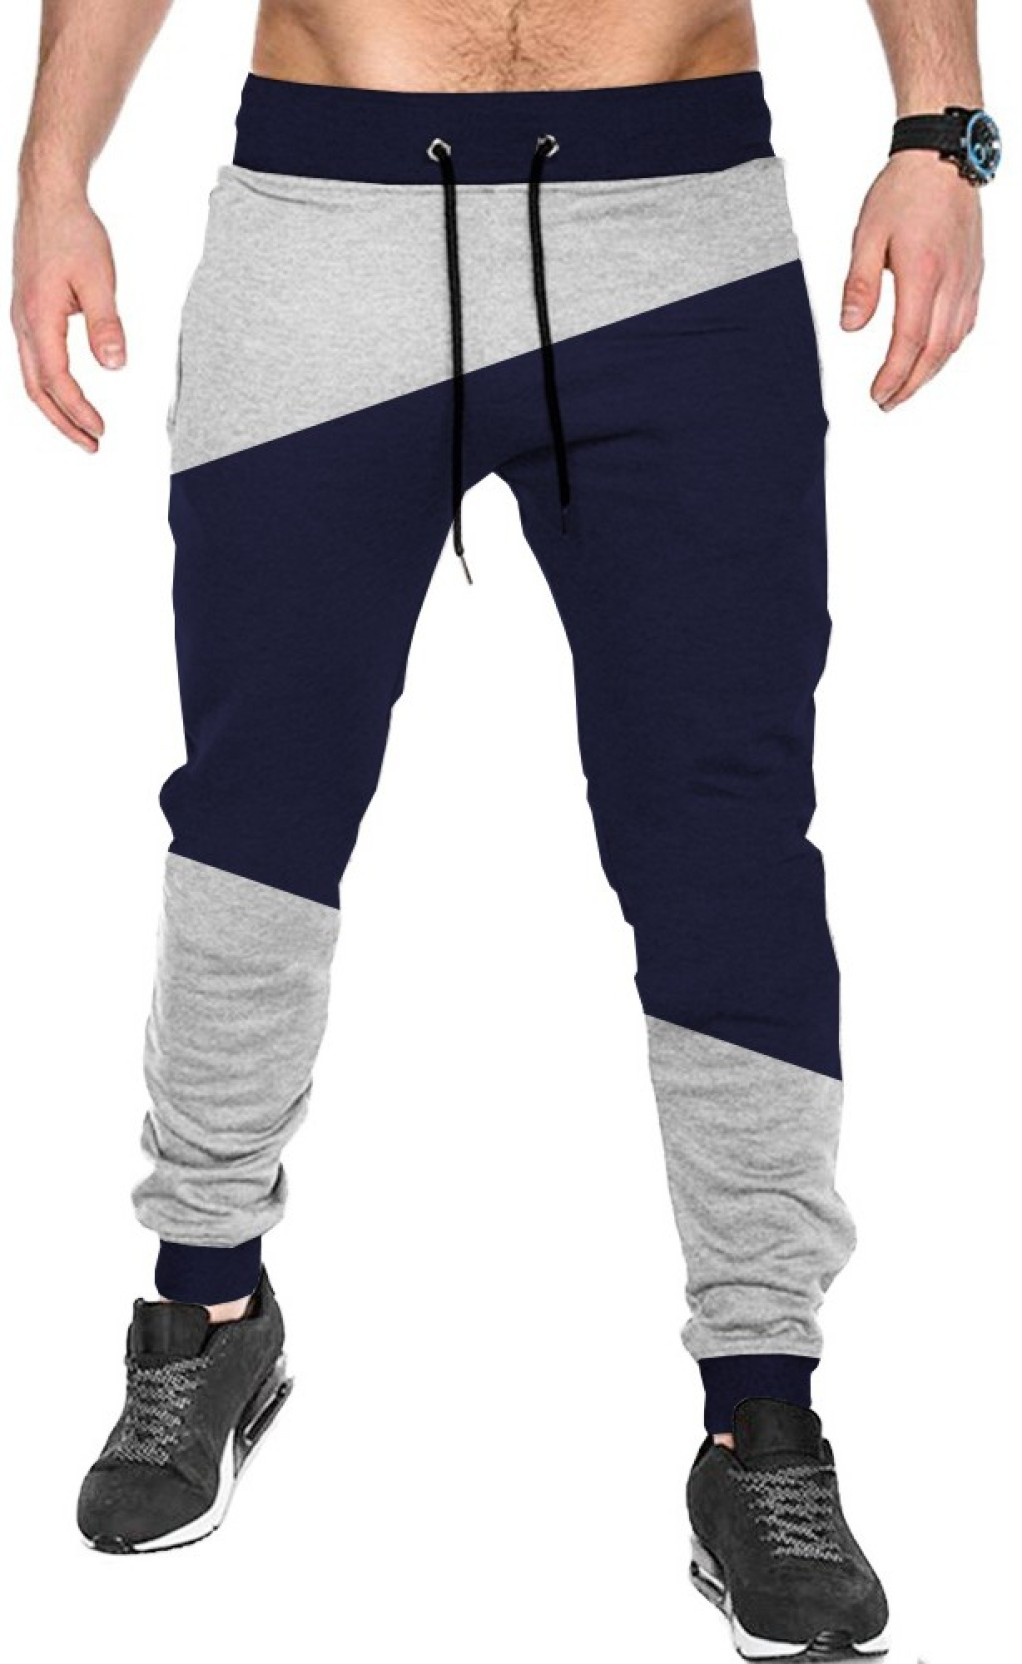 Joggers Shoes Online India